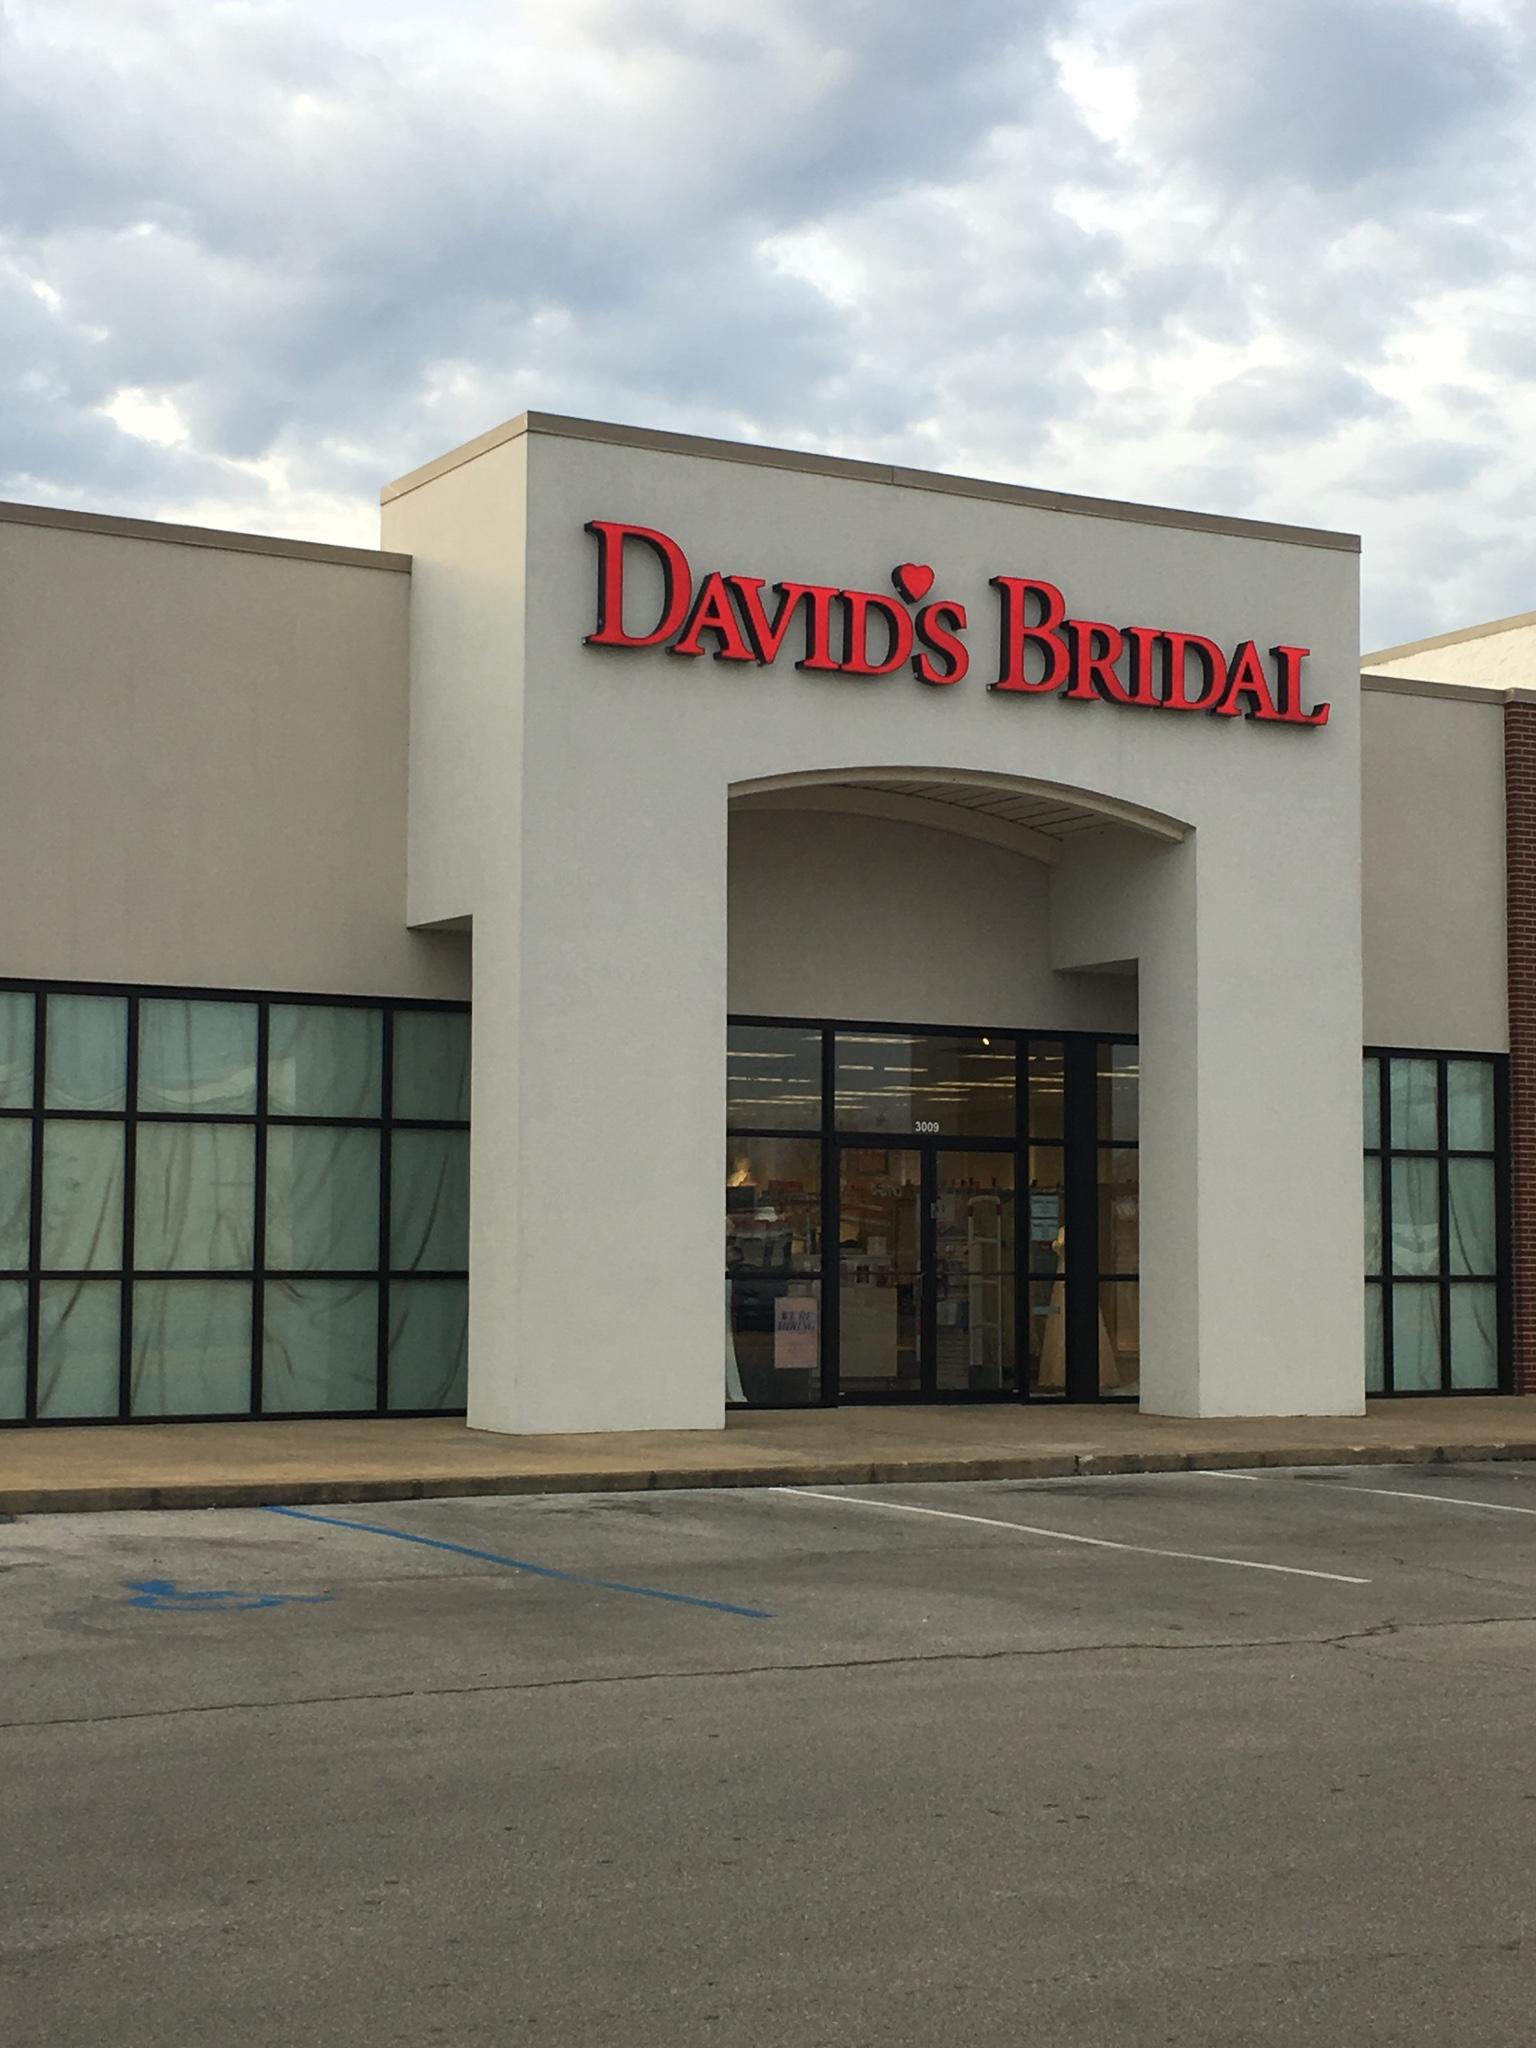 Bridal Shower Stores Near Me